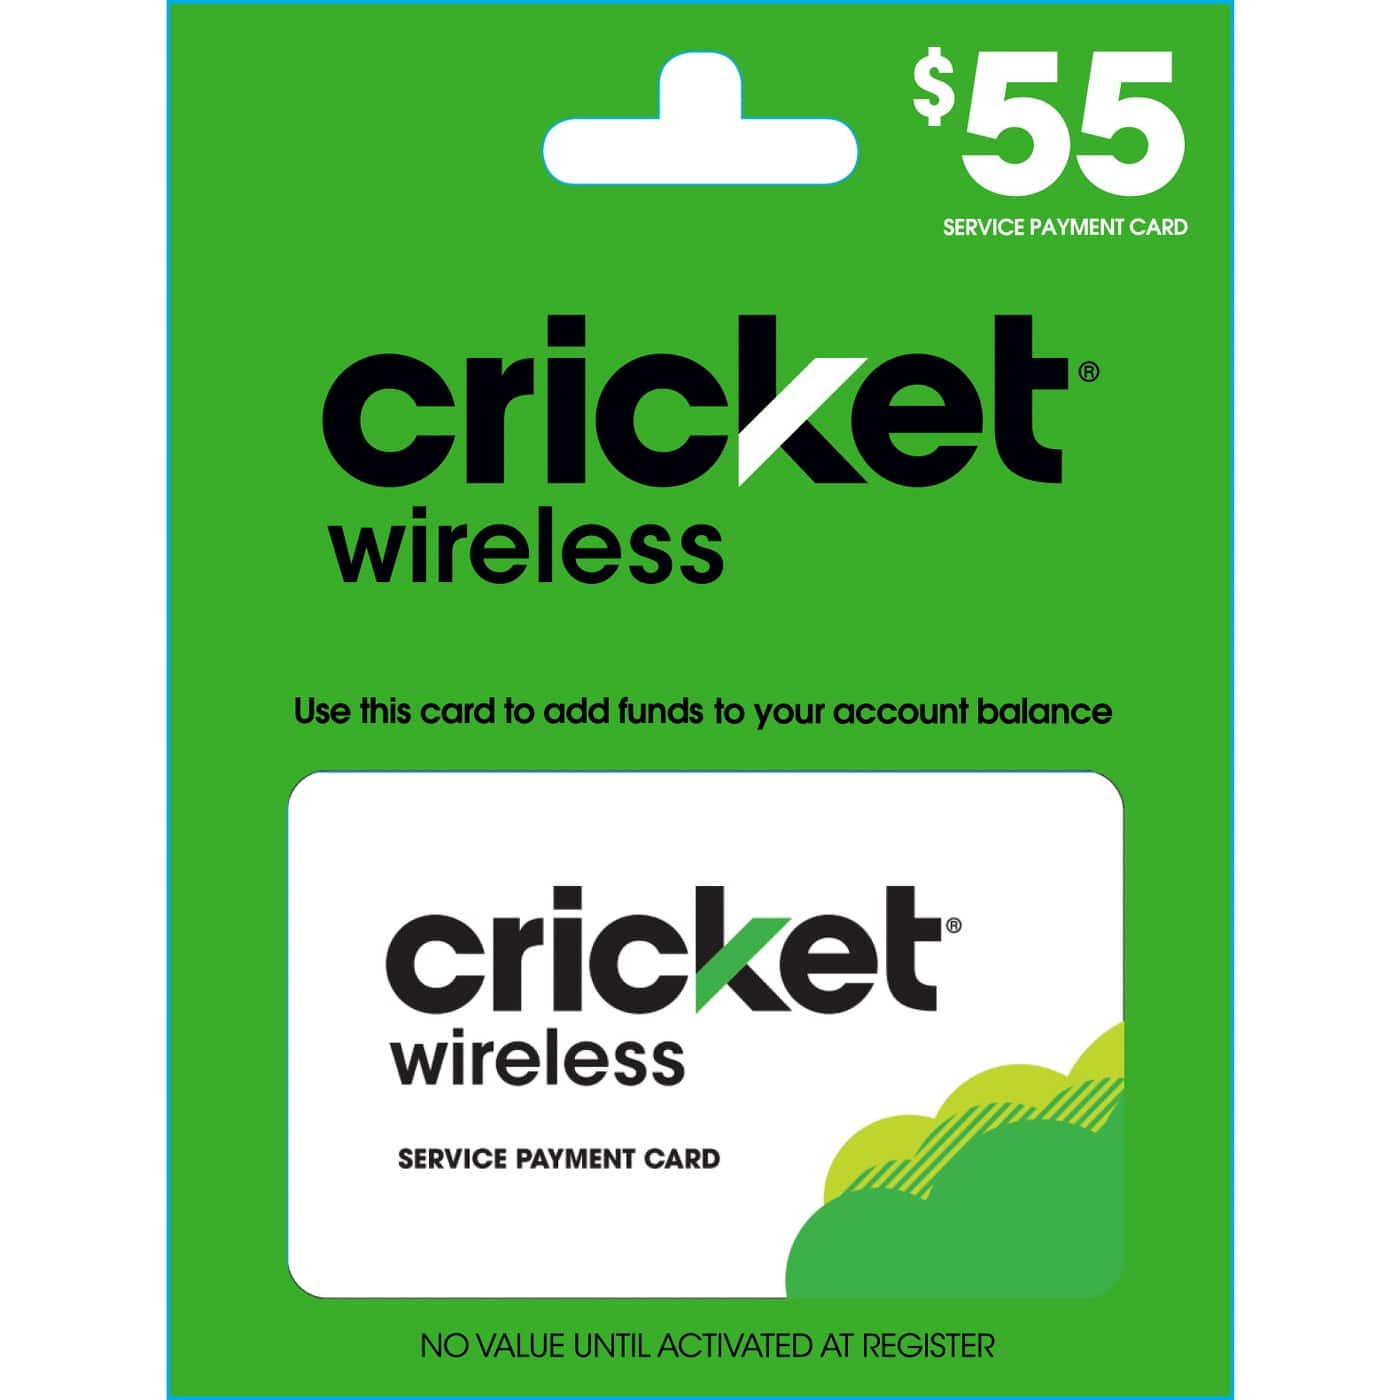 Prepaid Airtime Phone Refill Cards: Cricket, TracFone & More